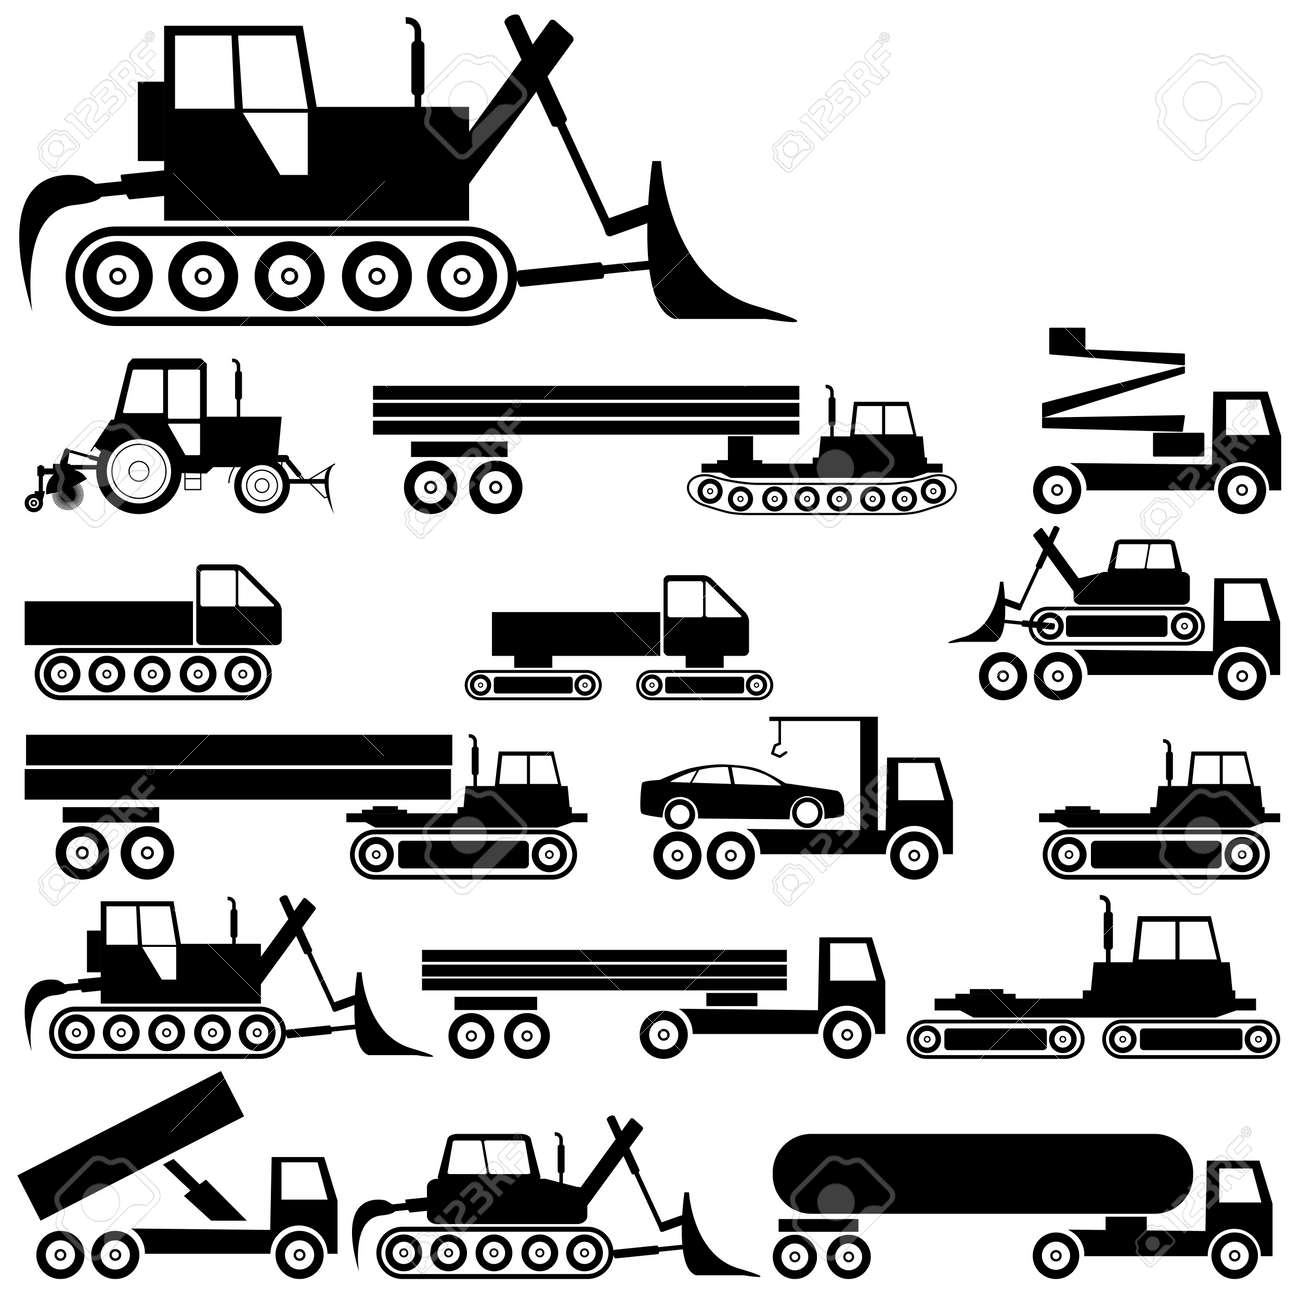 Cars Vehicles Car Body Special Cars Technique Royalty Free Cliparts Vectors And Stock Illustration Image 14375254